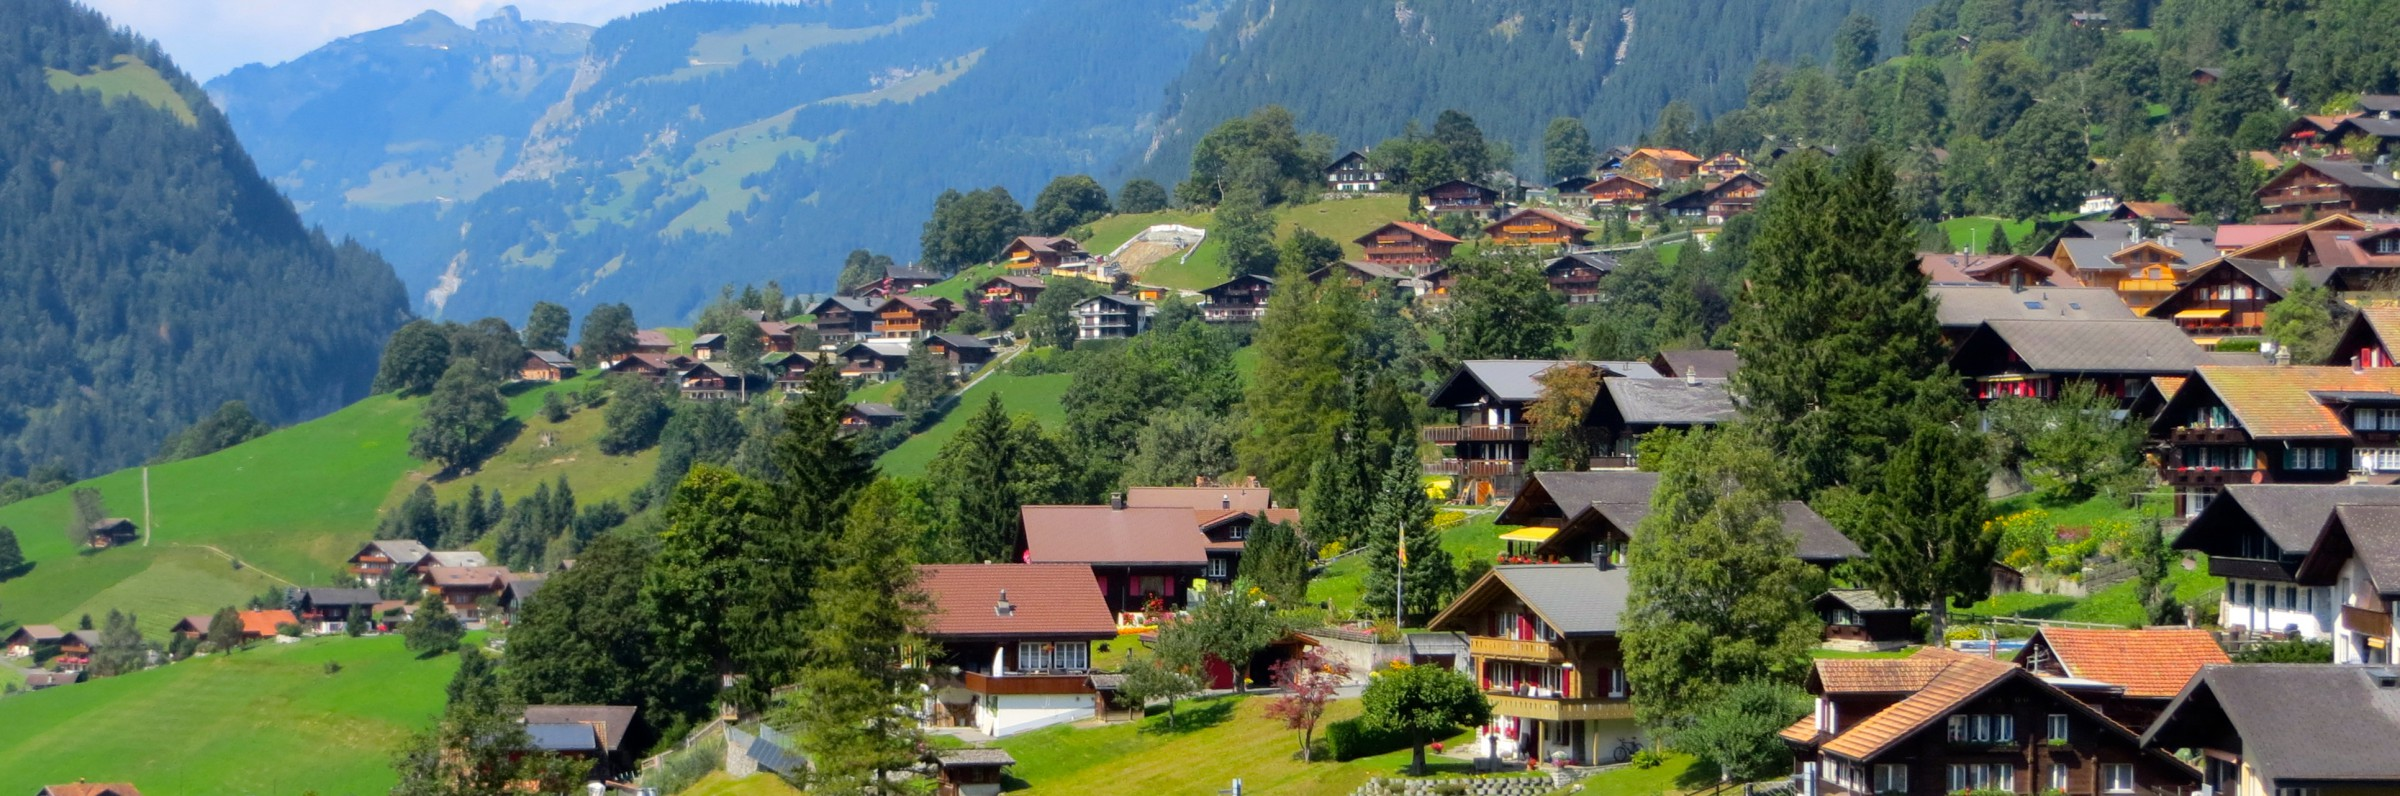 Switzerland Grindelwald